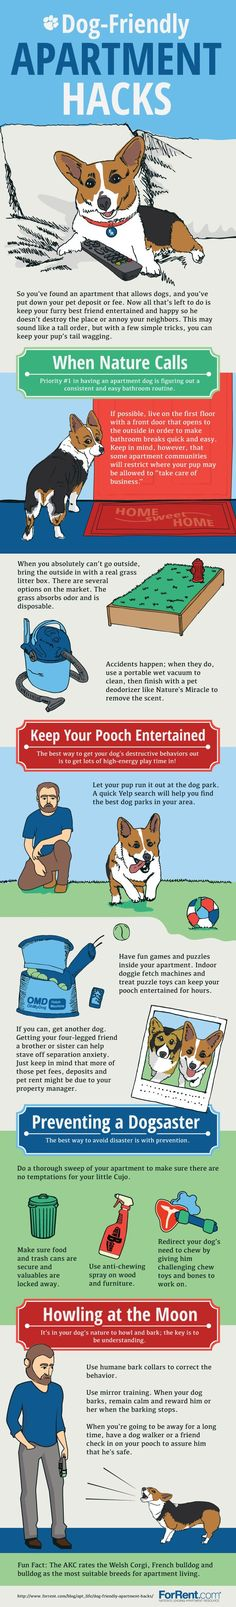 Great hacks for your dog (or the dog you are looking adopt)! It can be difficult to have a pet in an apartment, but these ideas make it easy.